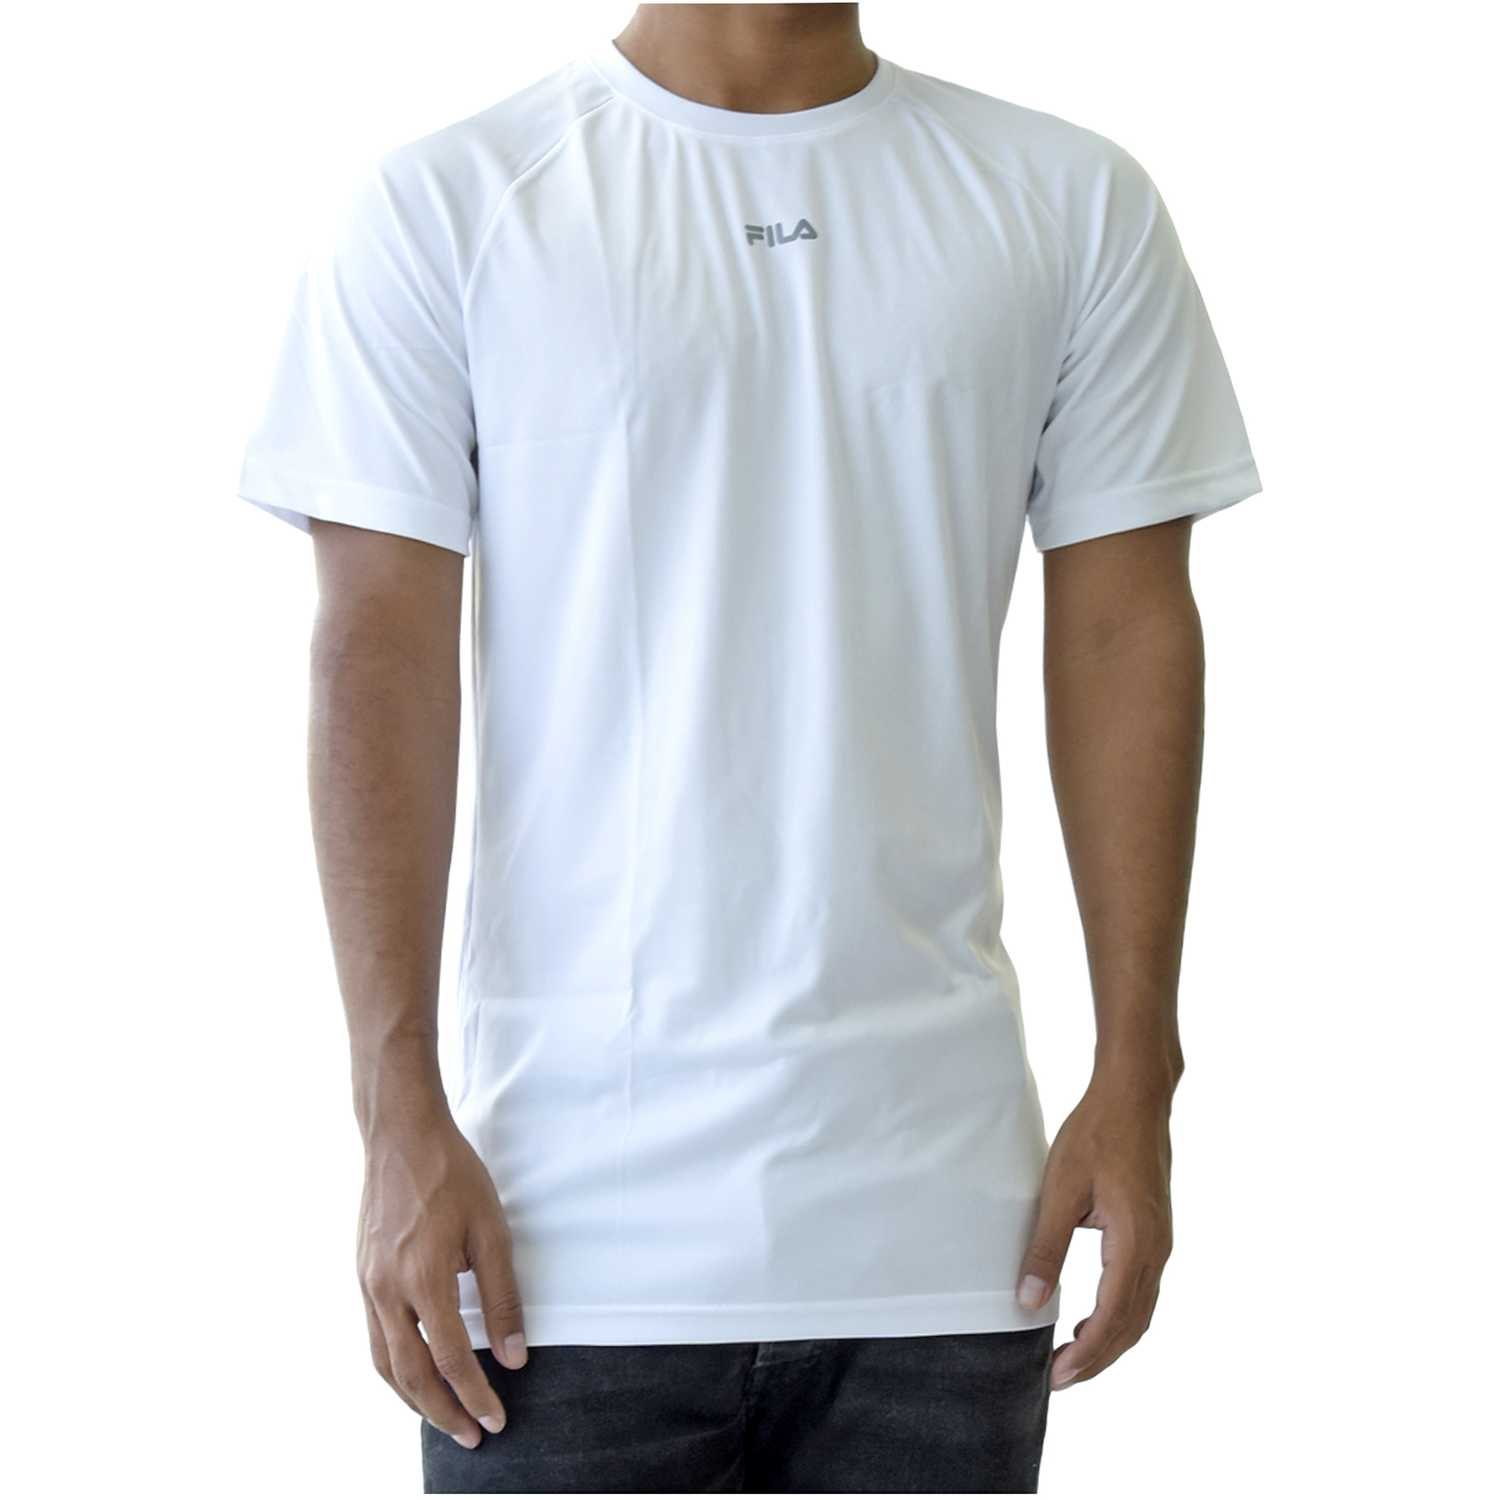 Fila men t-shirt basic train Blanco Camisetas y Polos Deportivos